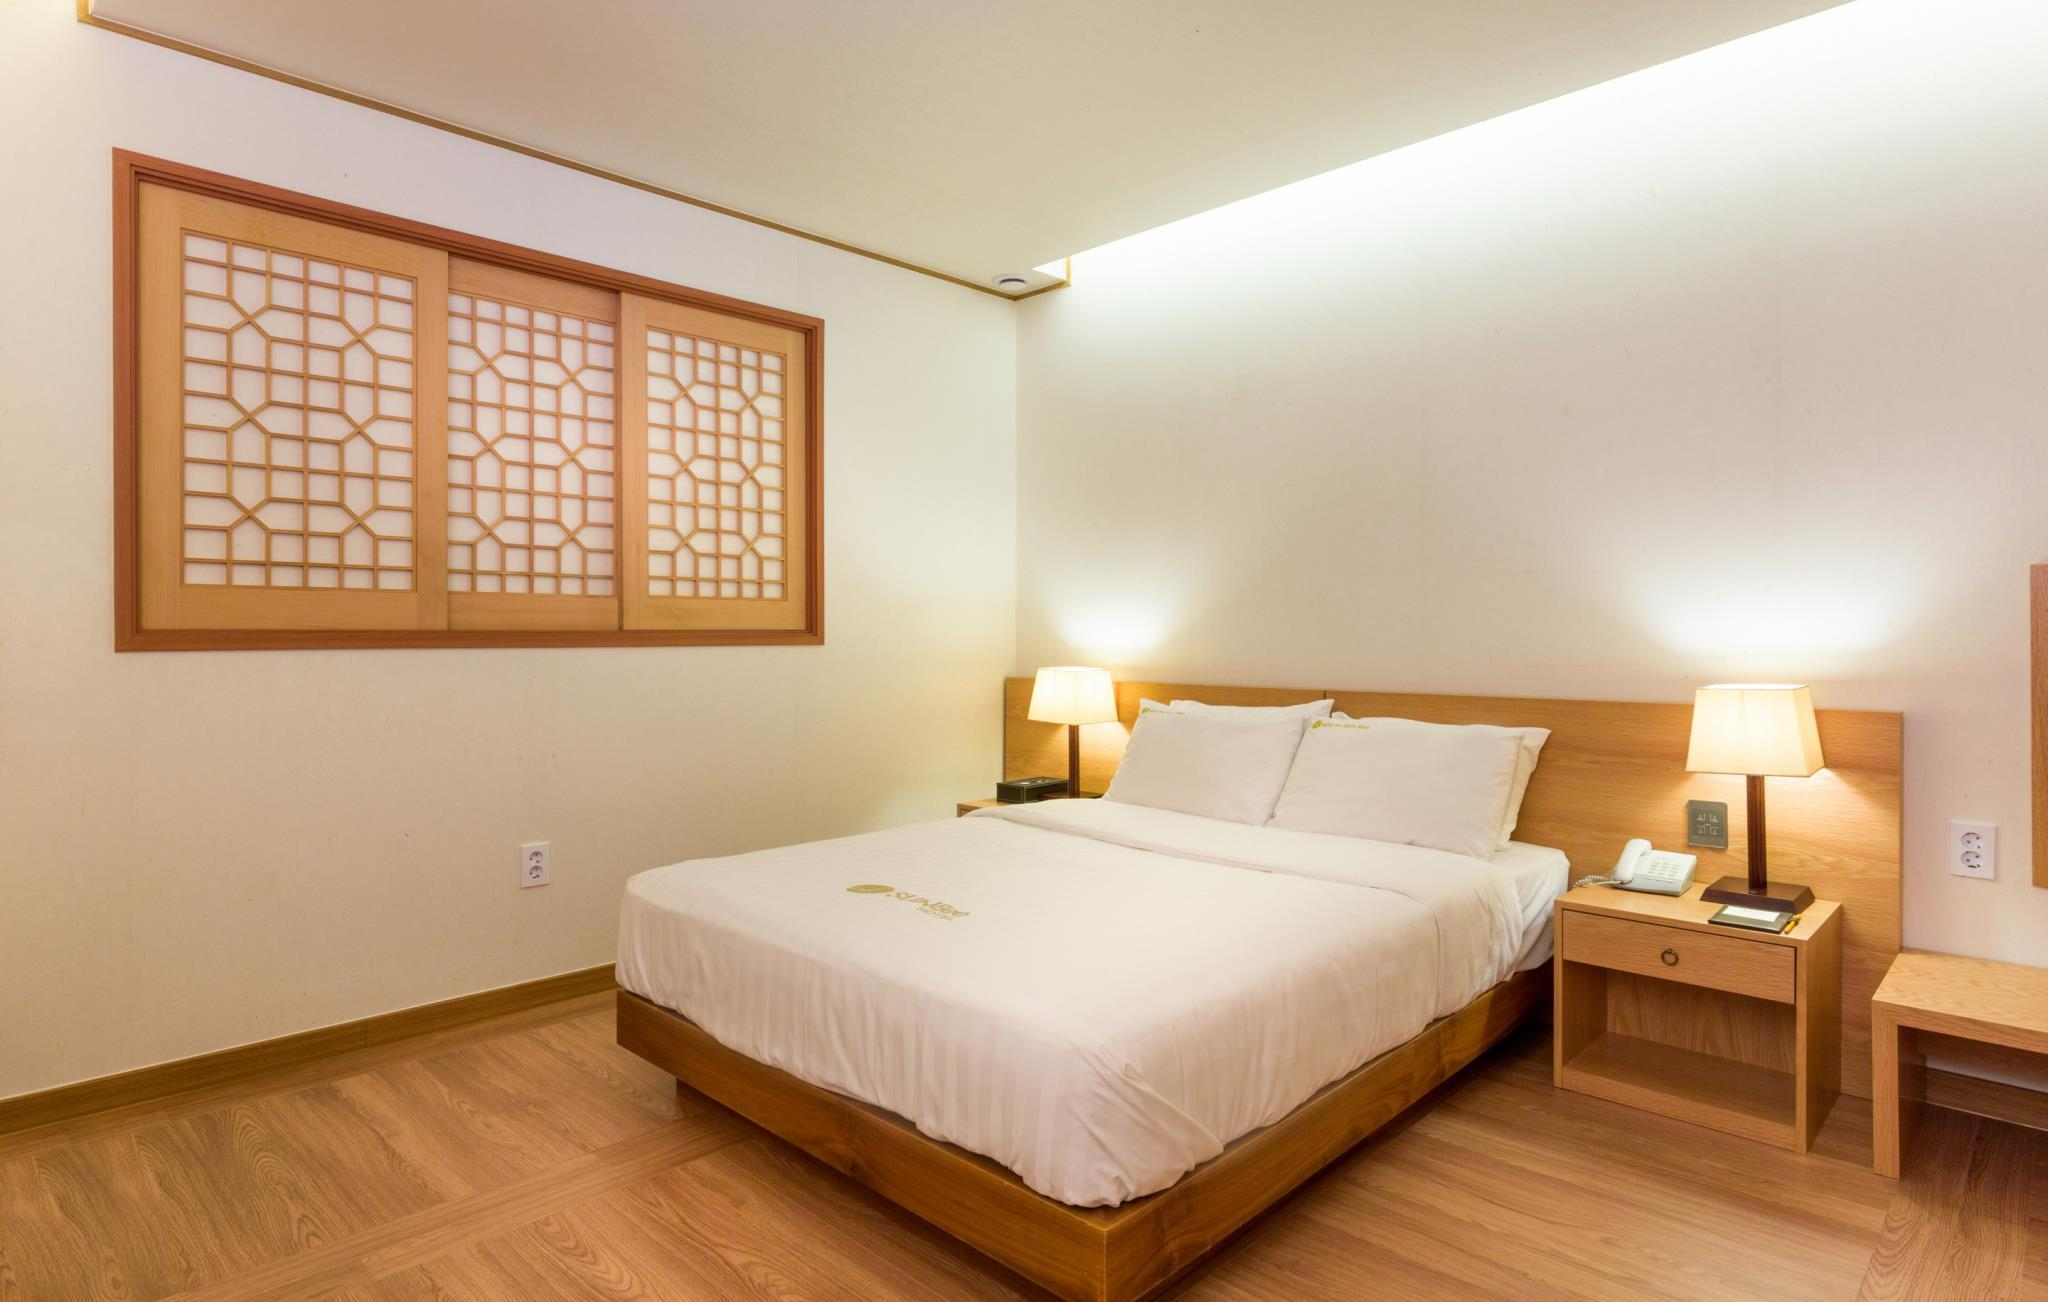 Dubbelrum i koreansk stil (Korean Style Double Room)